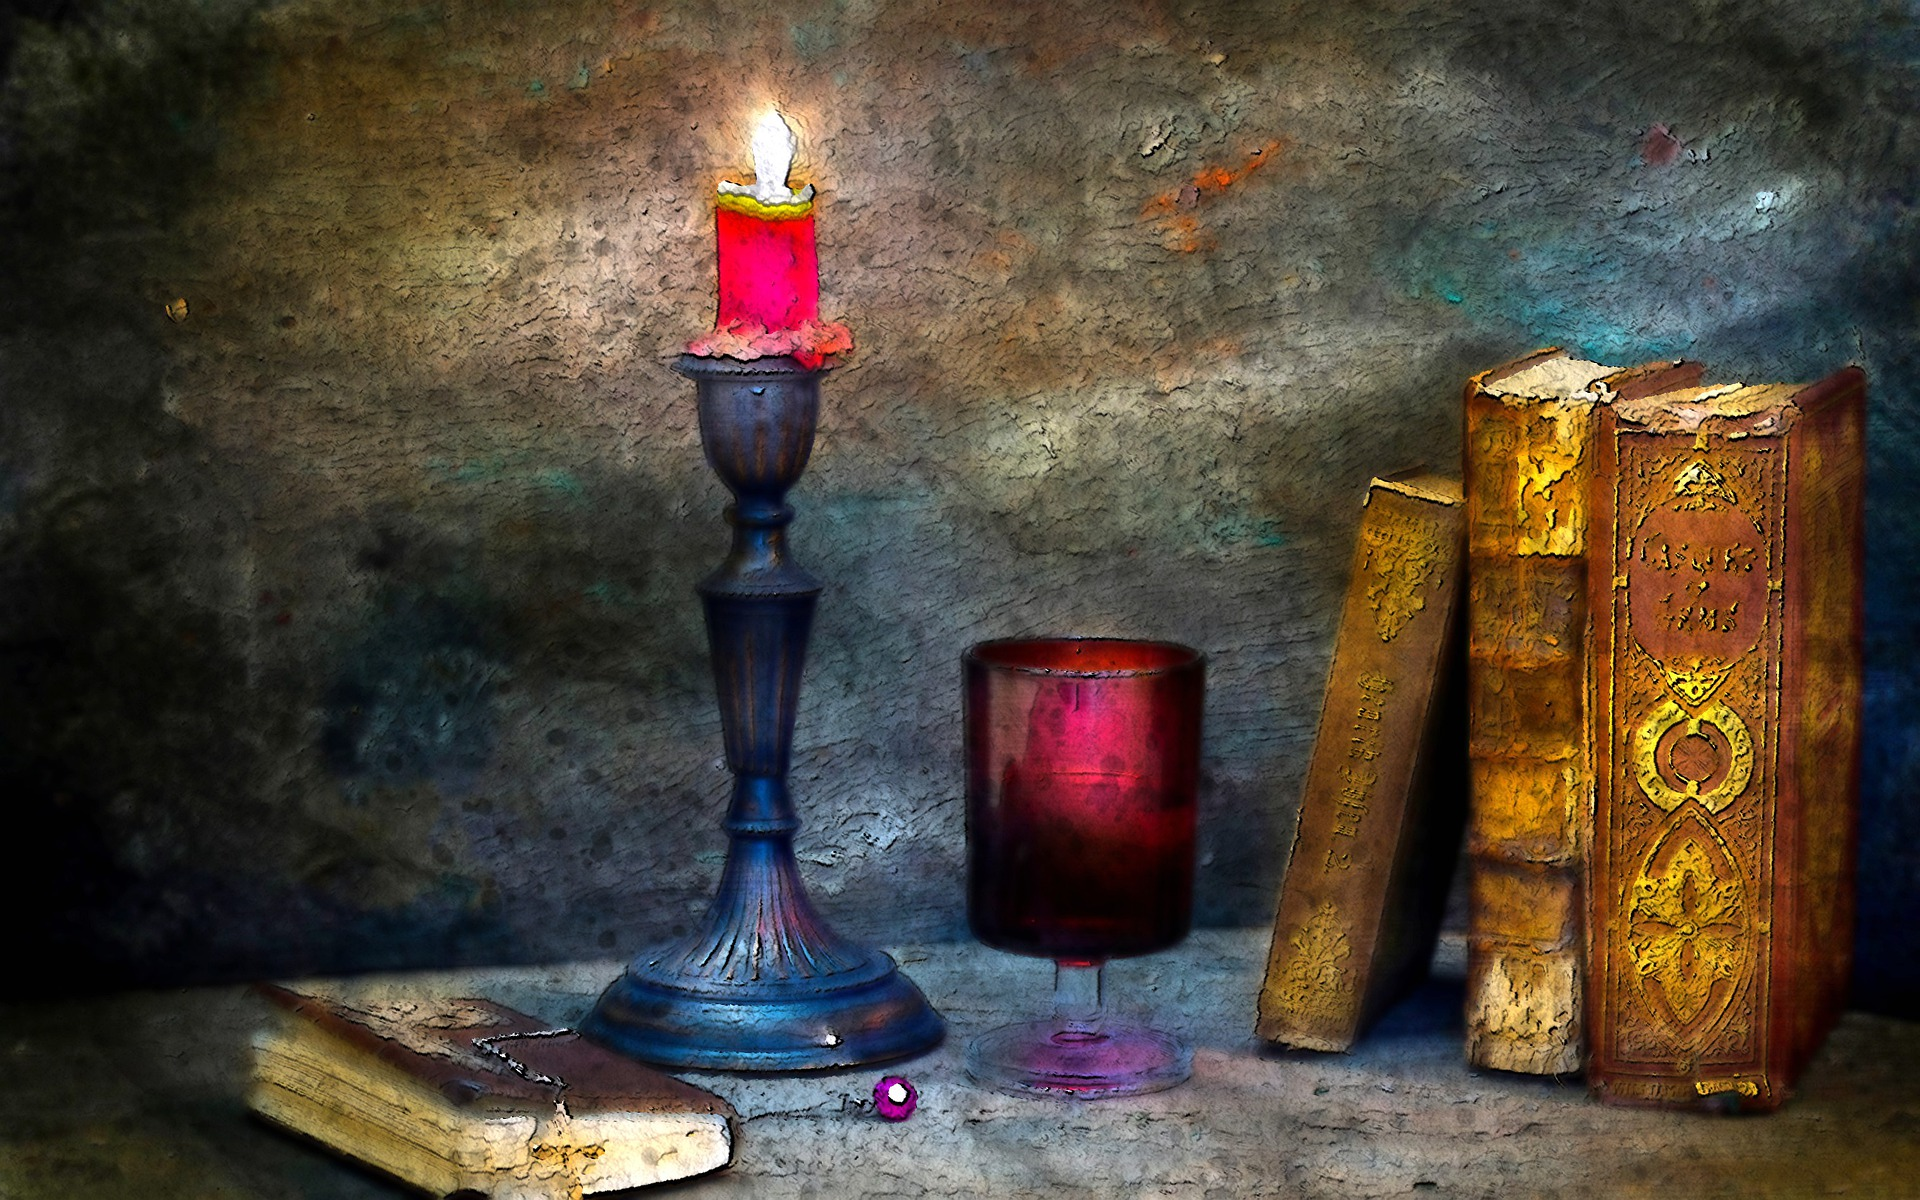 painting of old books by candlelight